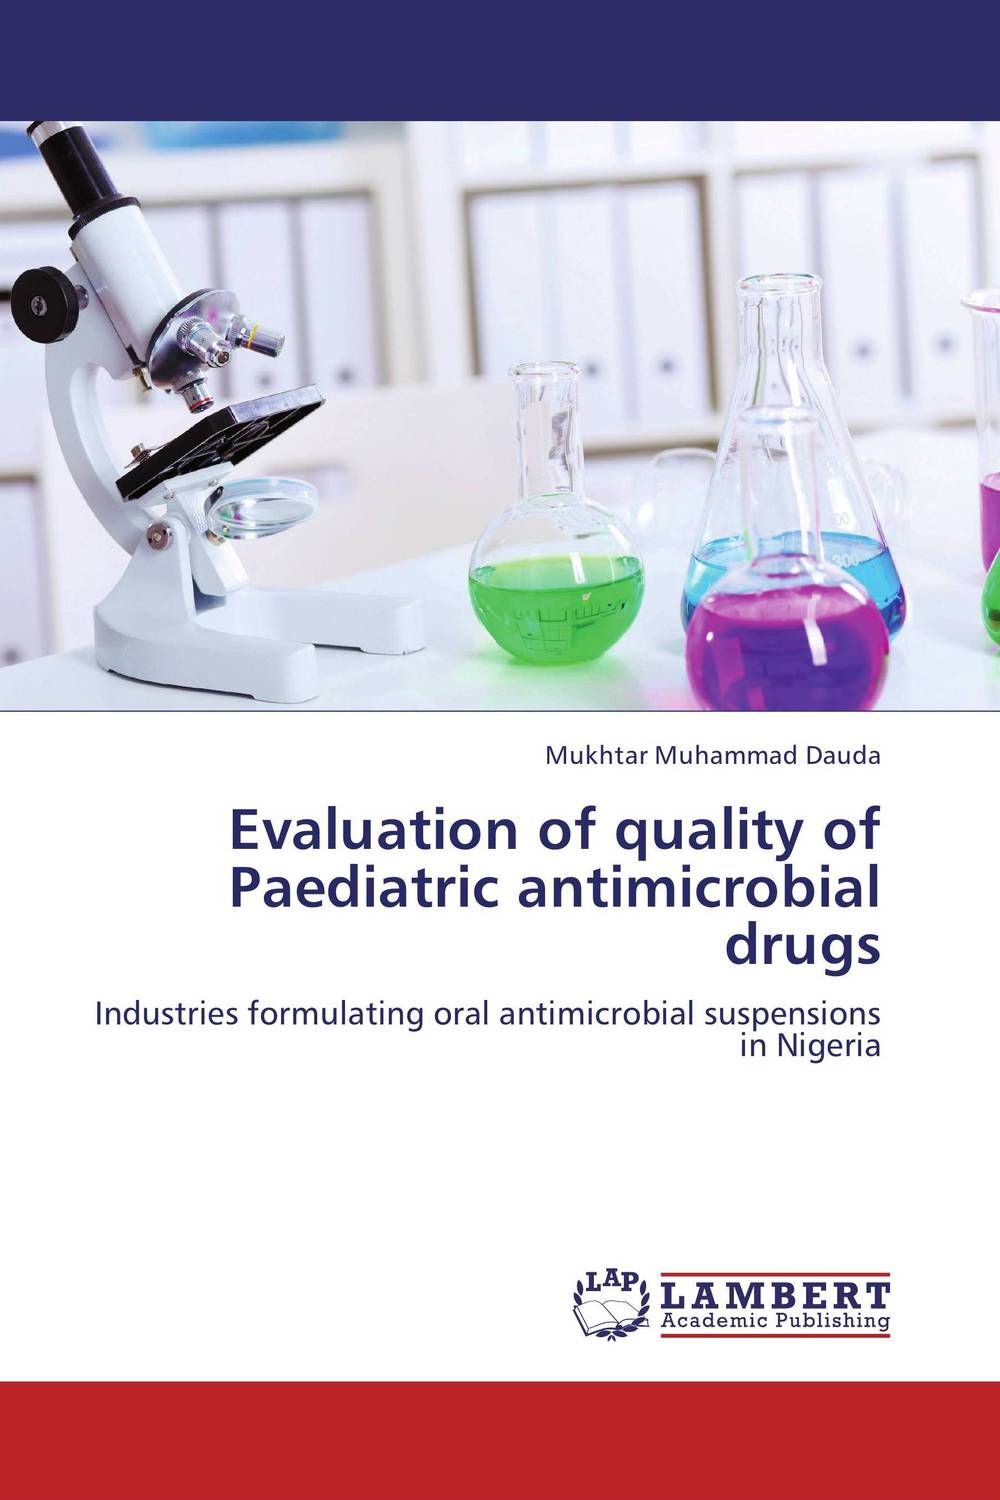 Evaluation of quality of Paediatric antimicrobial drugs